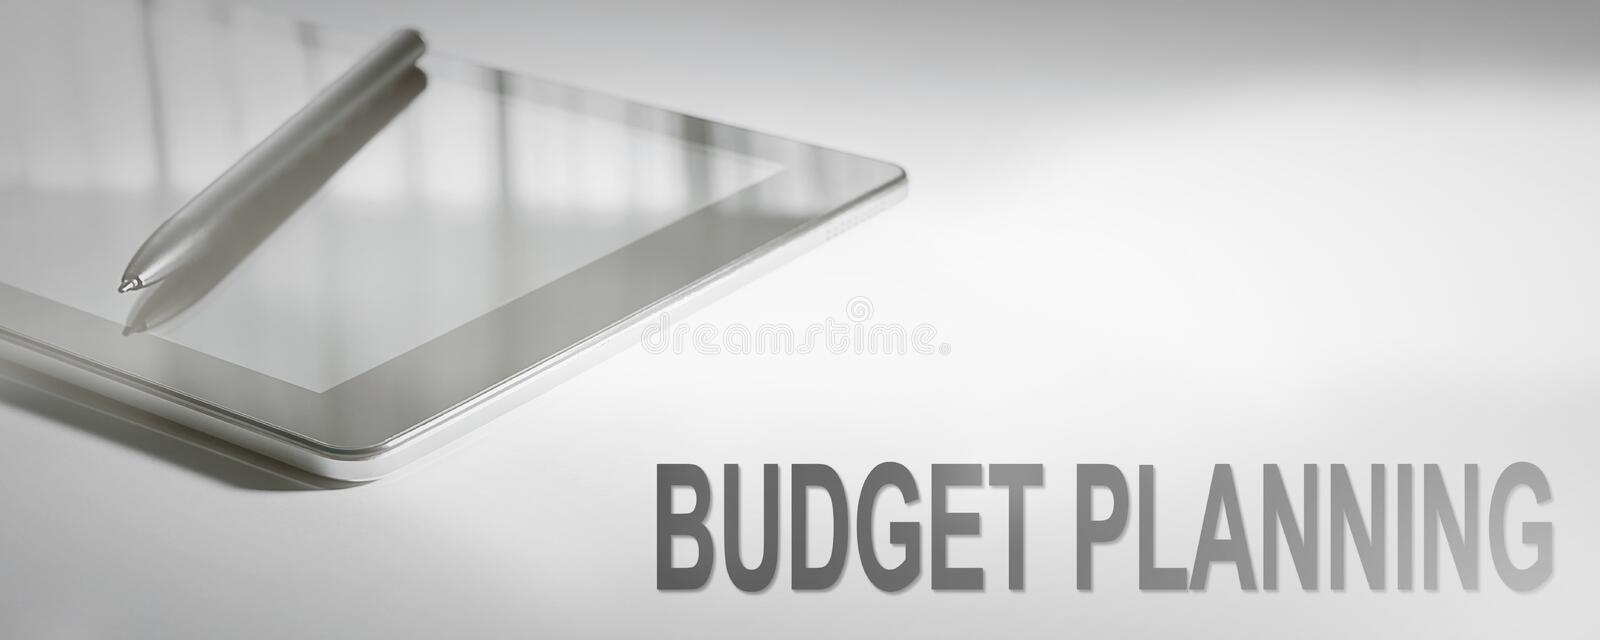 BUDGET PLANNING Business Concept Digital Technology. royalty free stock photography